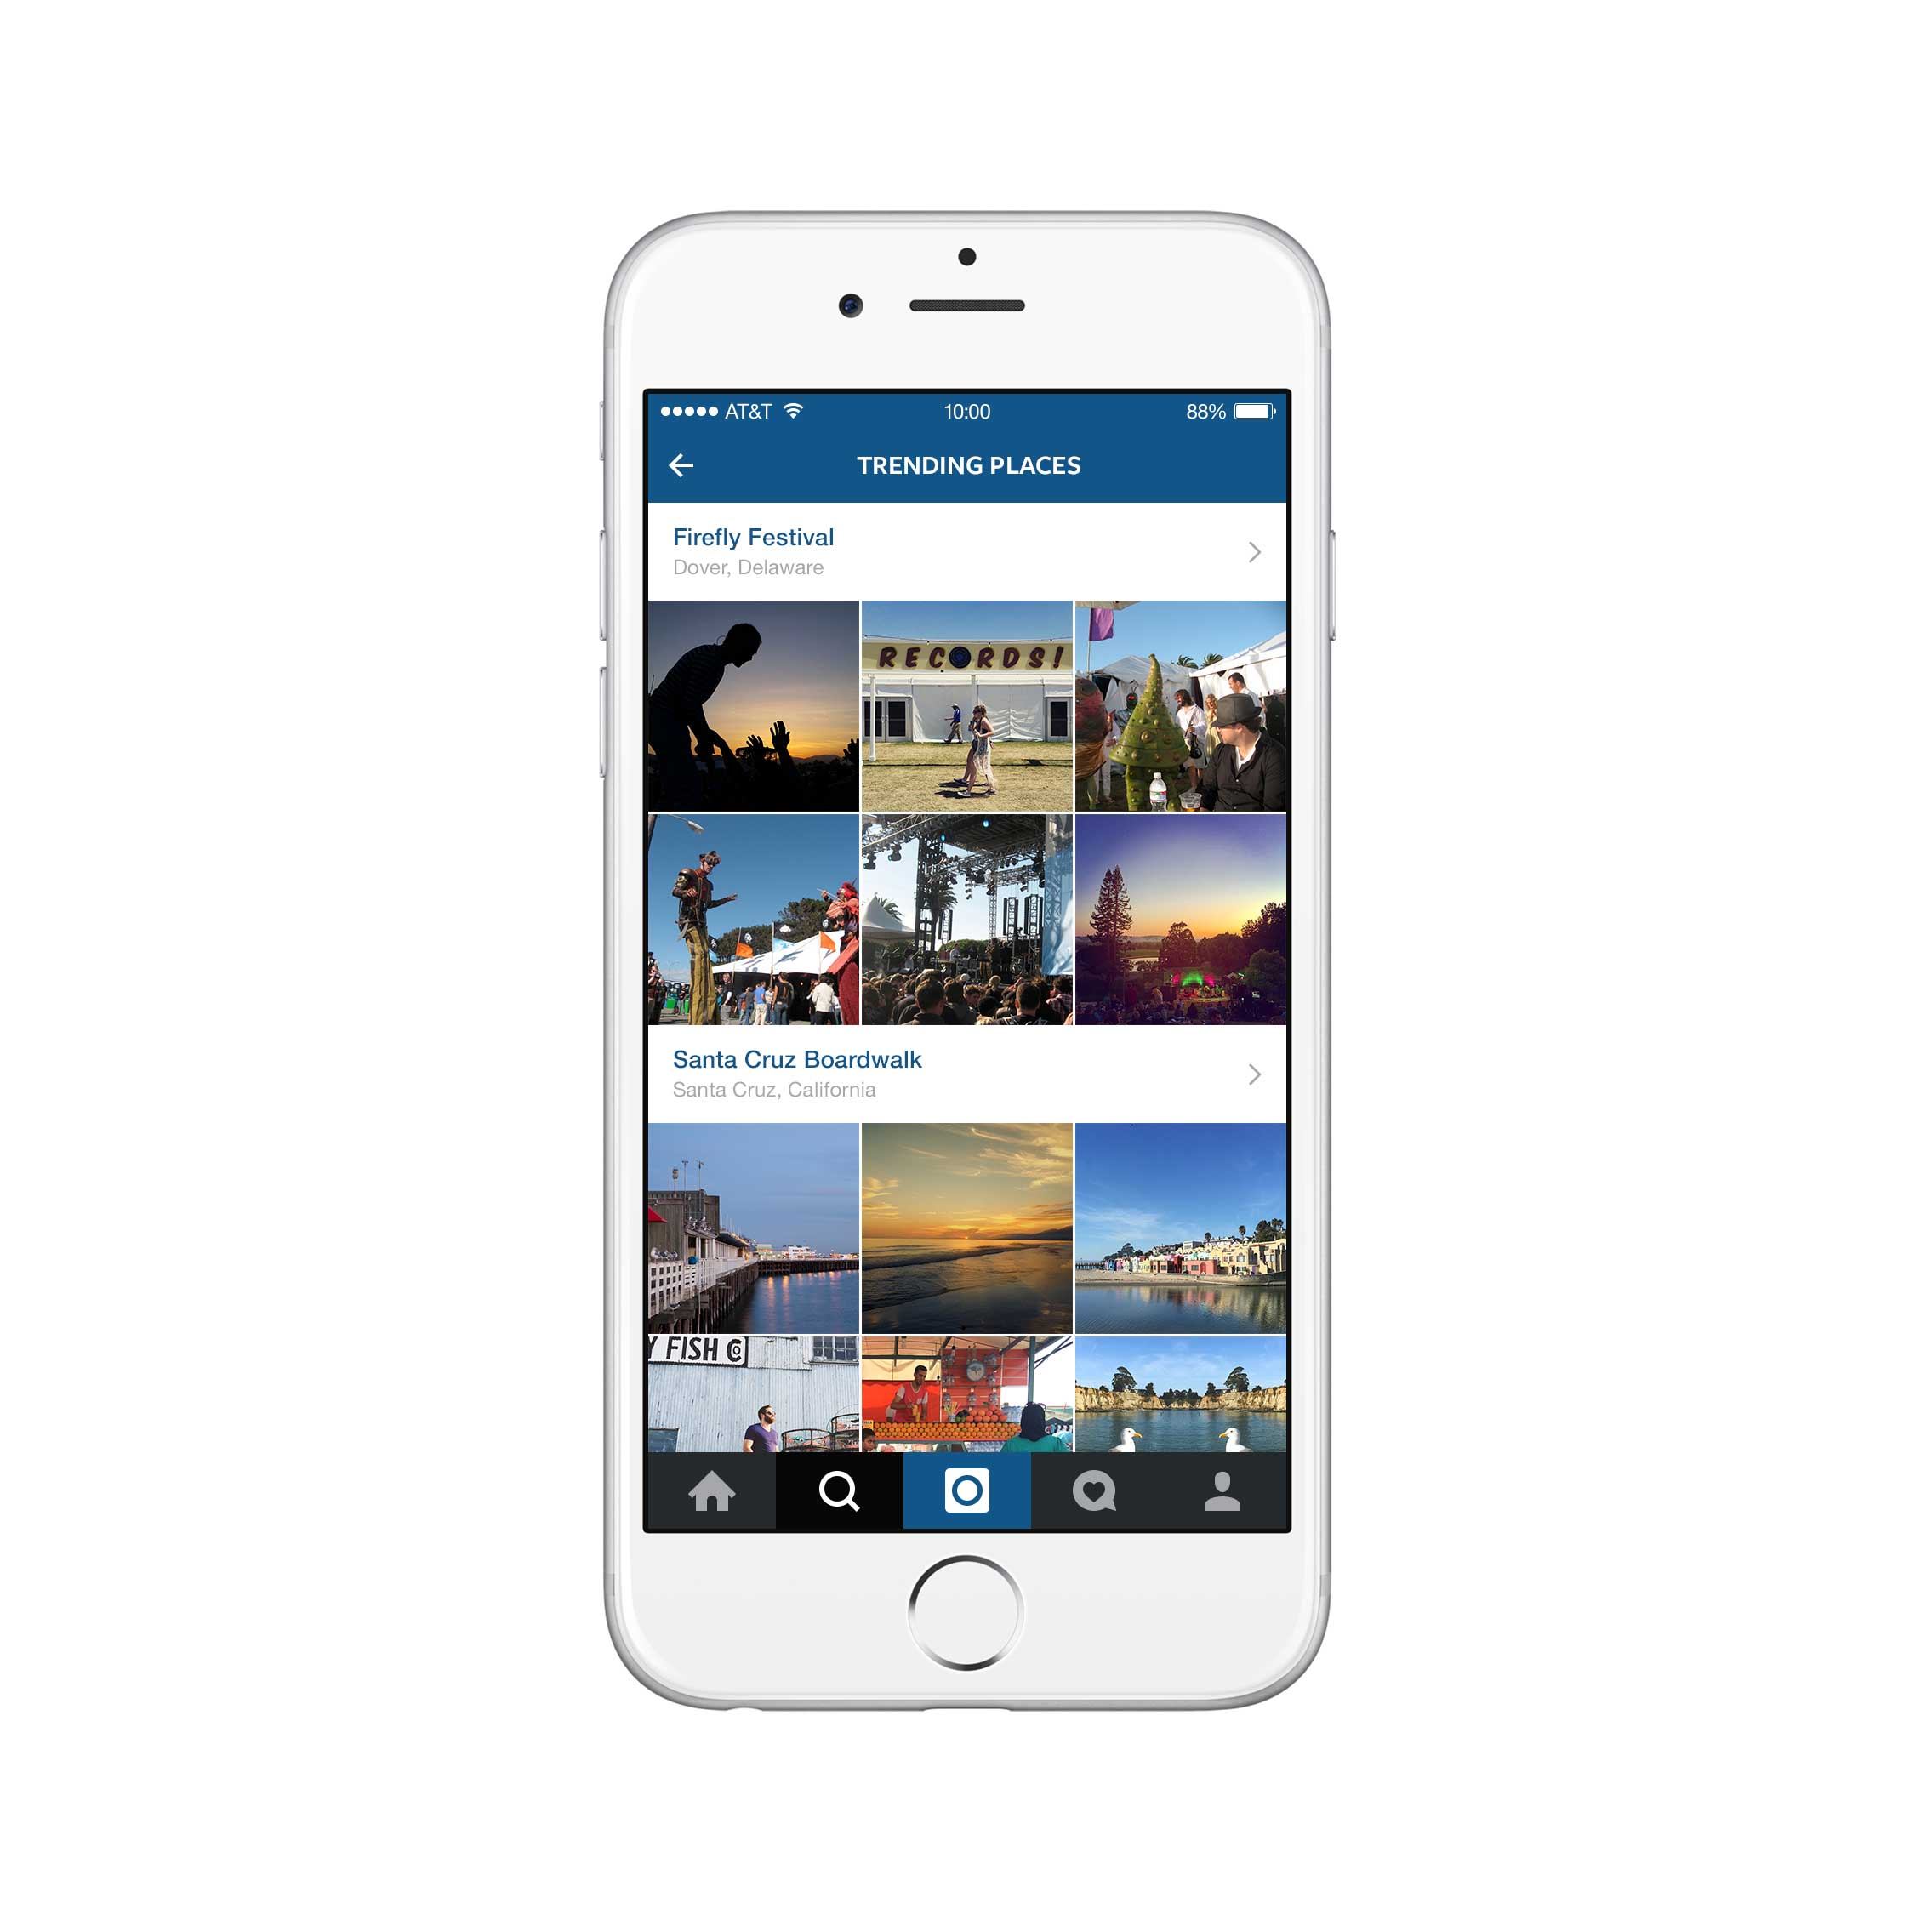 The new version of Instagram's Explore tab also offers a list of trending places around the world